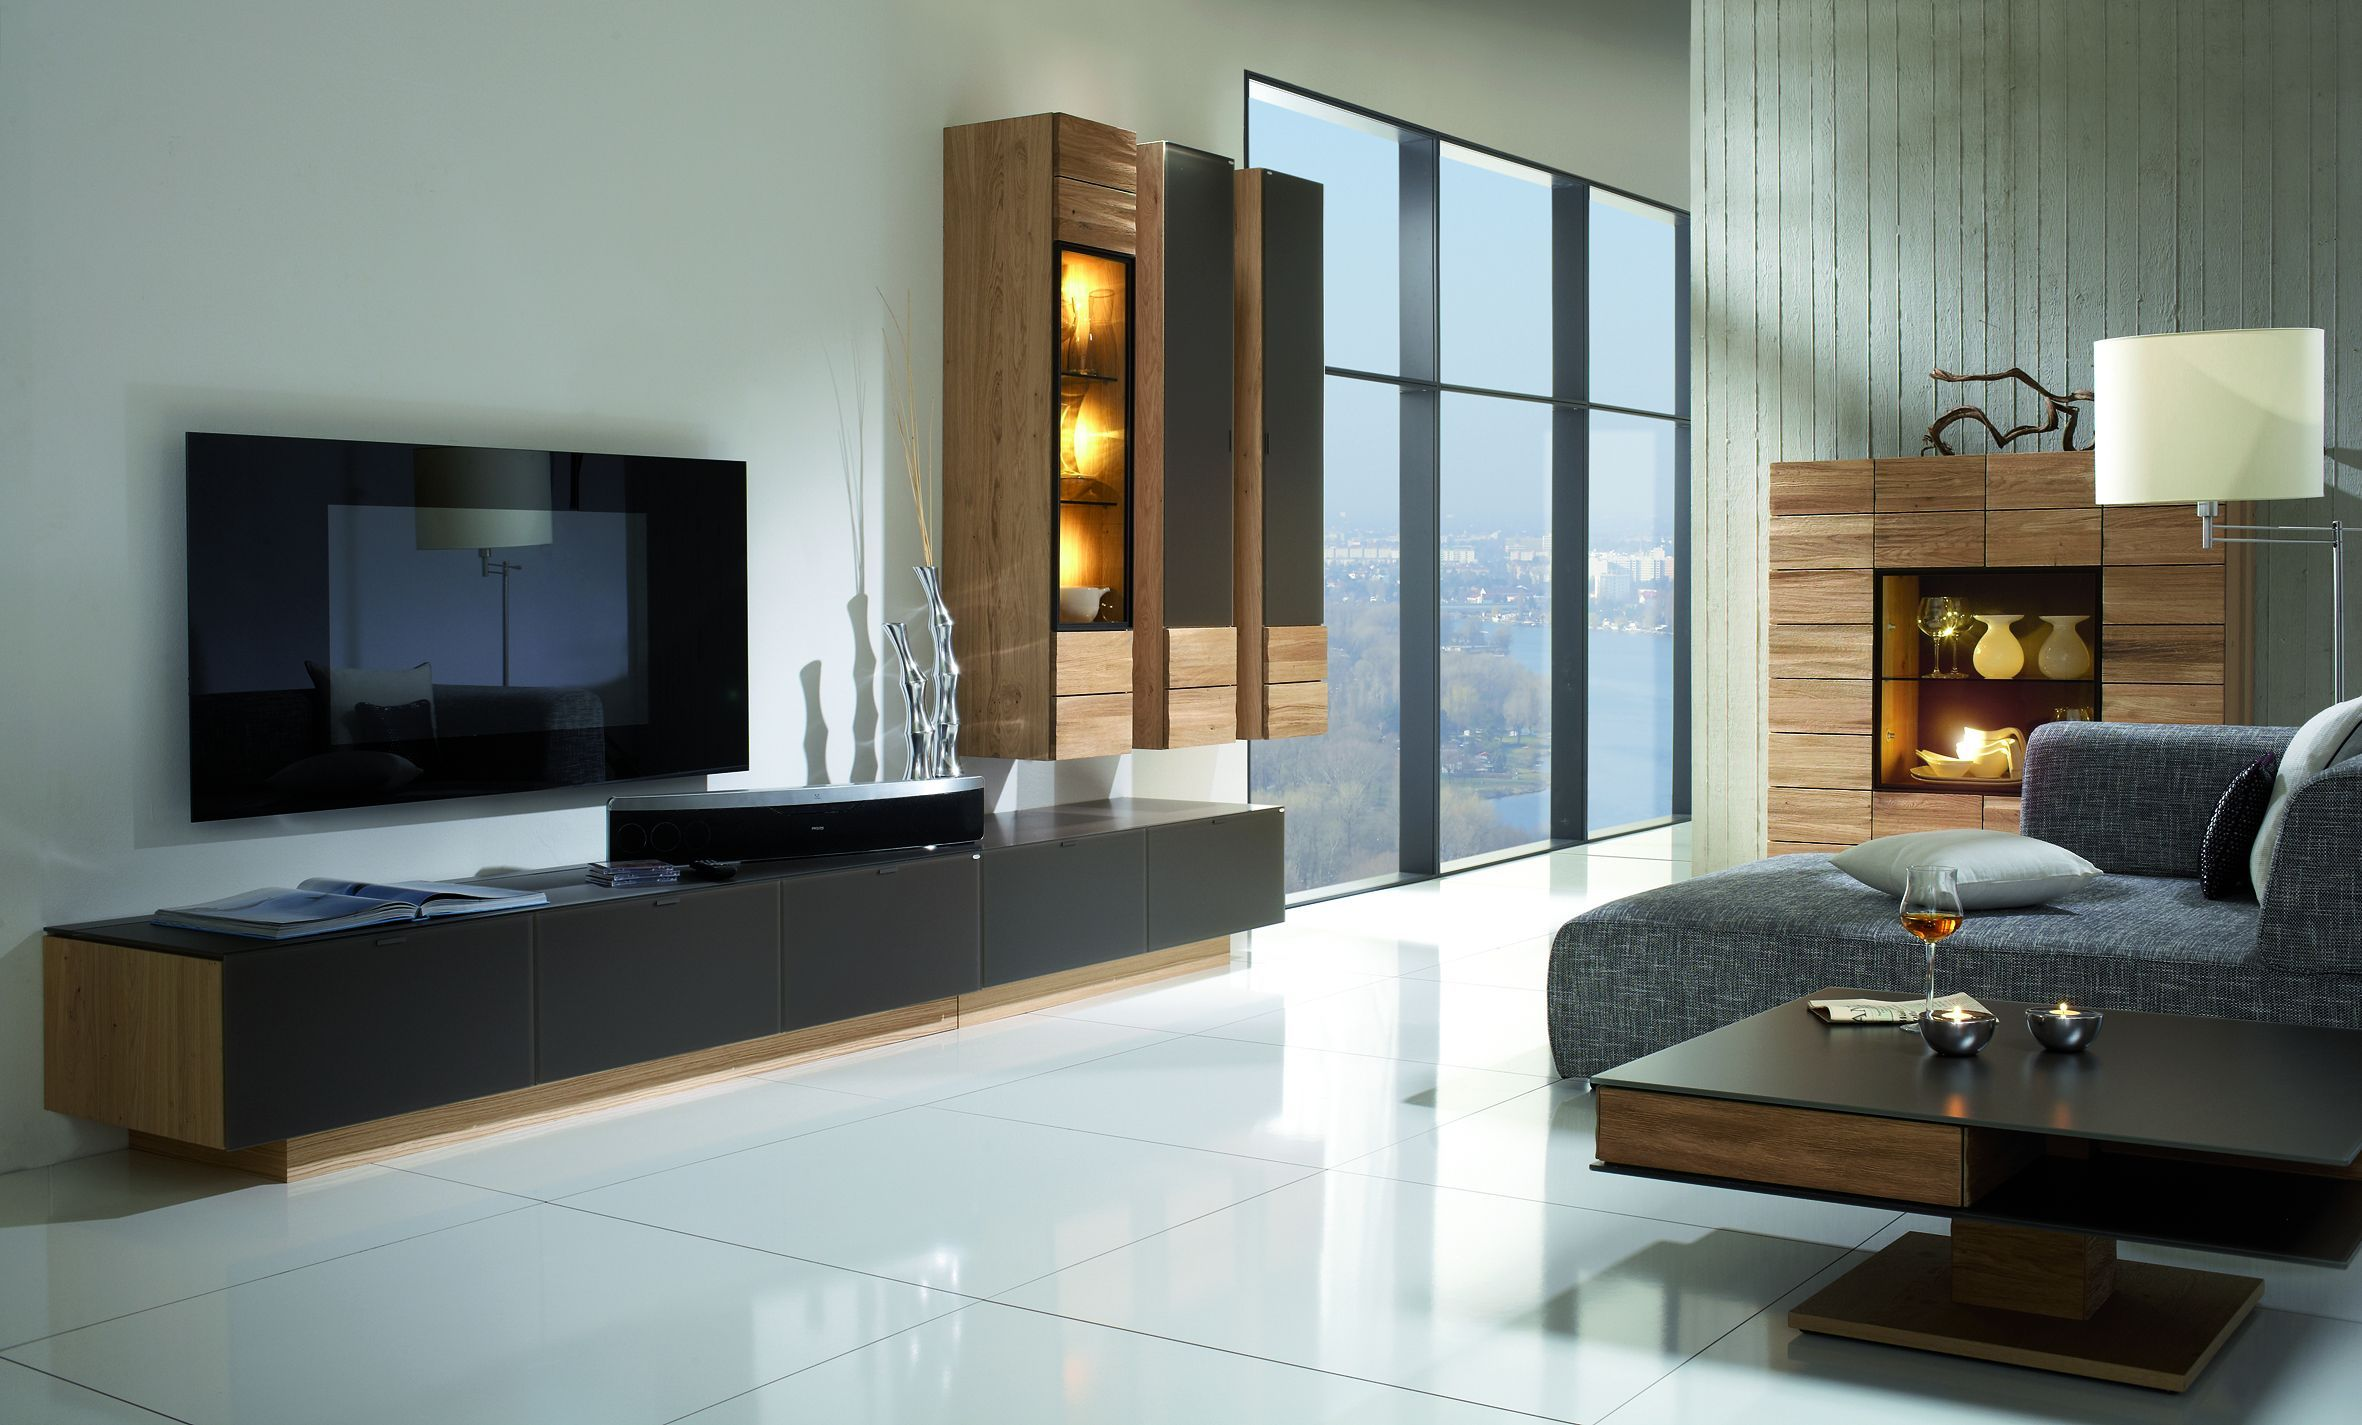 wohnkombination v montana moebel bleiker. Black Bedroom Furniture Sets. Home Design Ideas